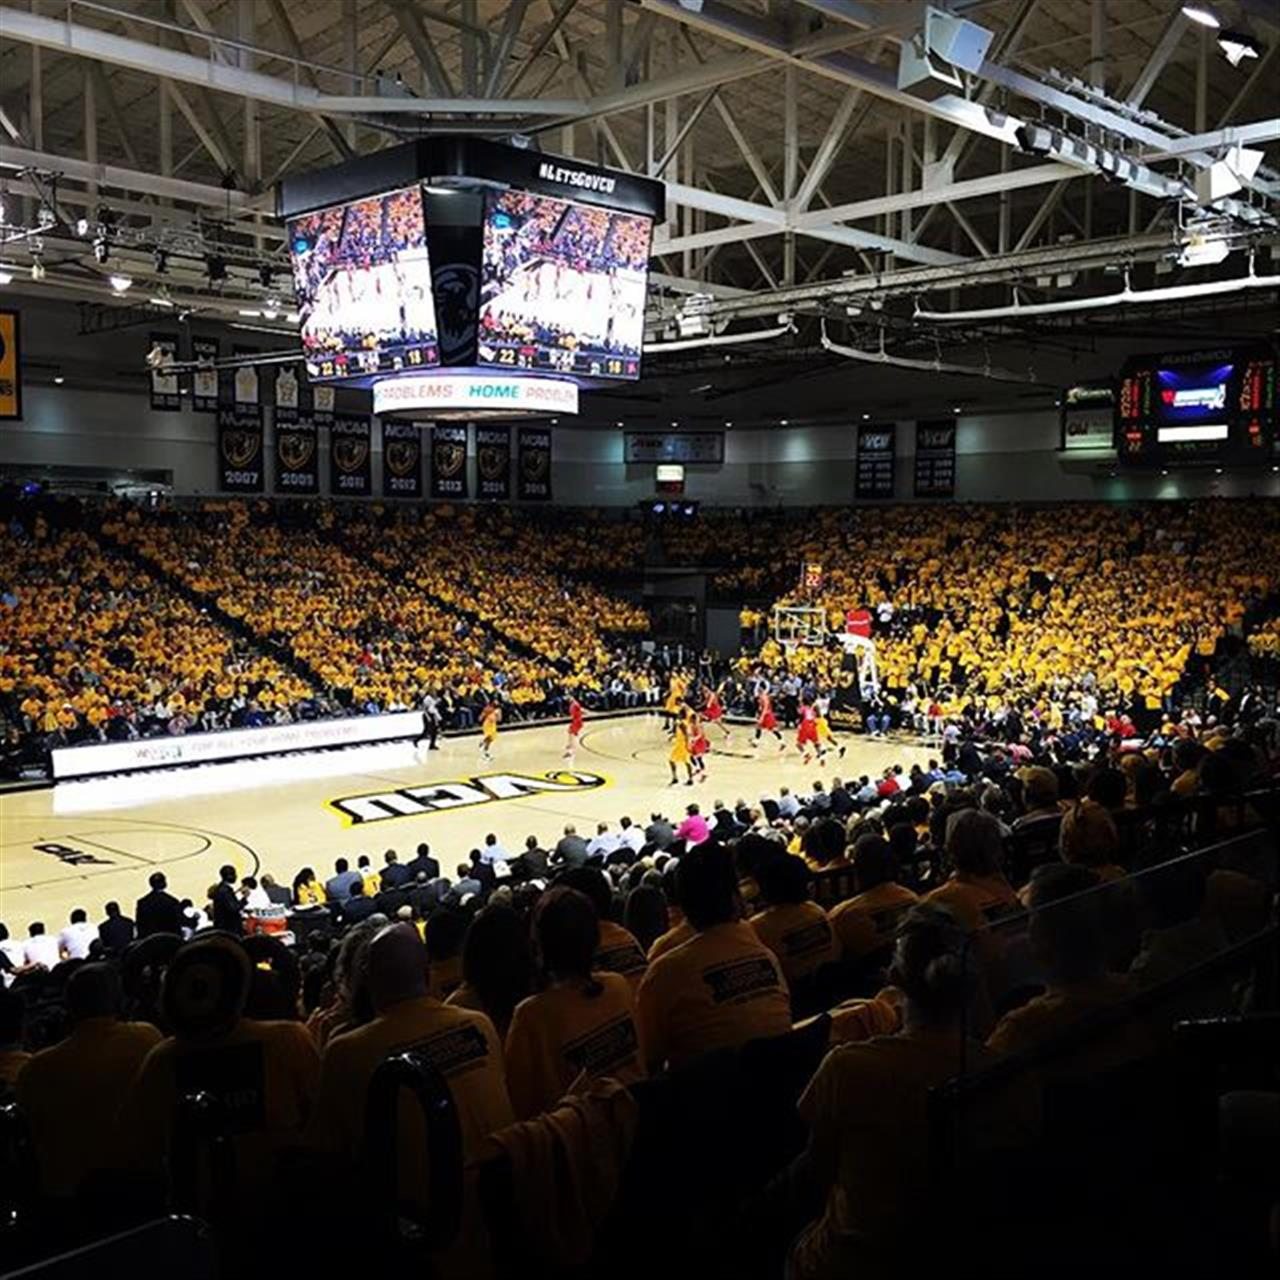 VCU vs UR - this is #RVA!